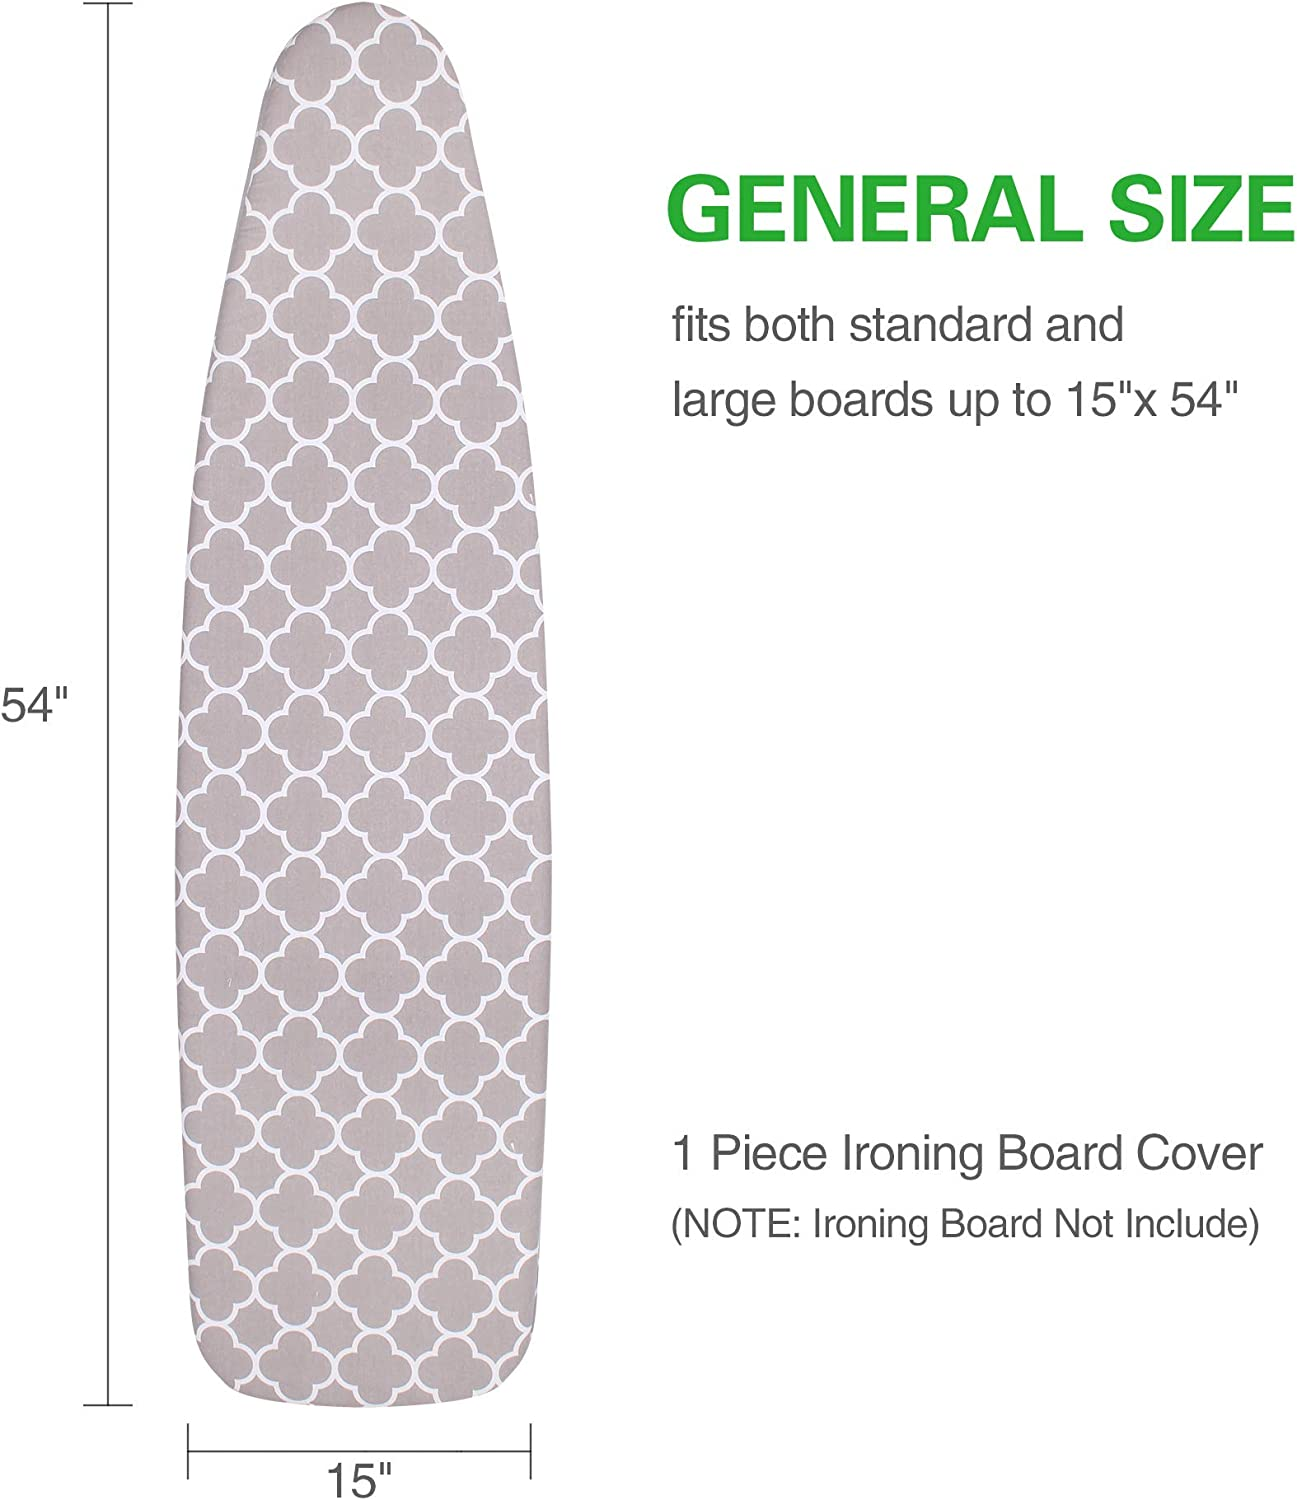 SUNKLOOF Scorch Resistance Ironing Board Cover